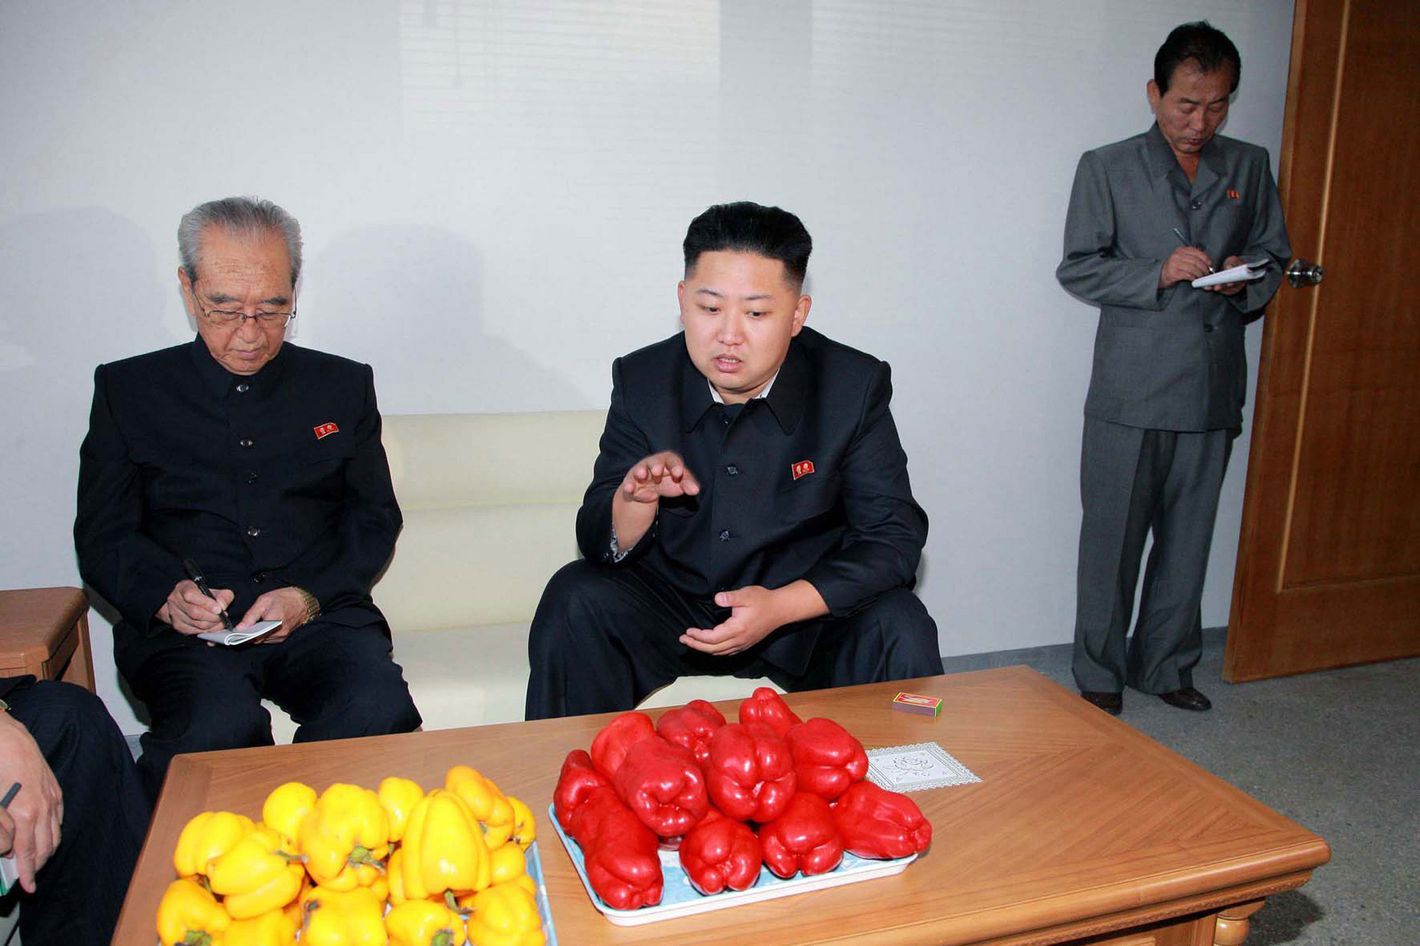 This undated picture released from North Korea's official Korean Central News Agency (KCNA) via the Korean News Service on September 22, 2012 shows North Korean leader Kim Jong Un (C) during a visit to the Pyongyang Vegetable Science Institute in Pyongyang.